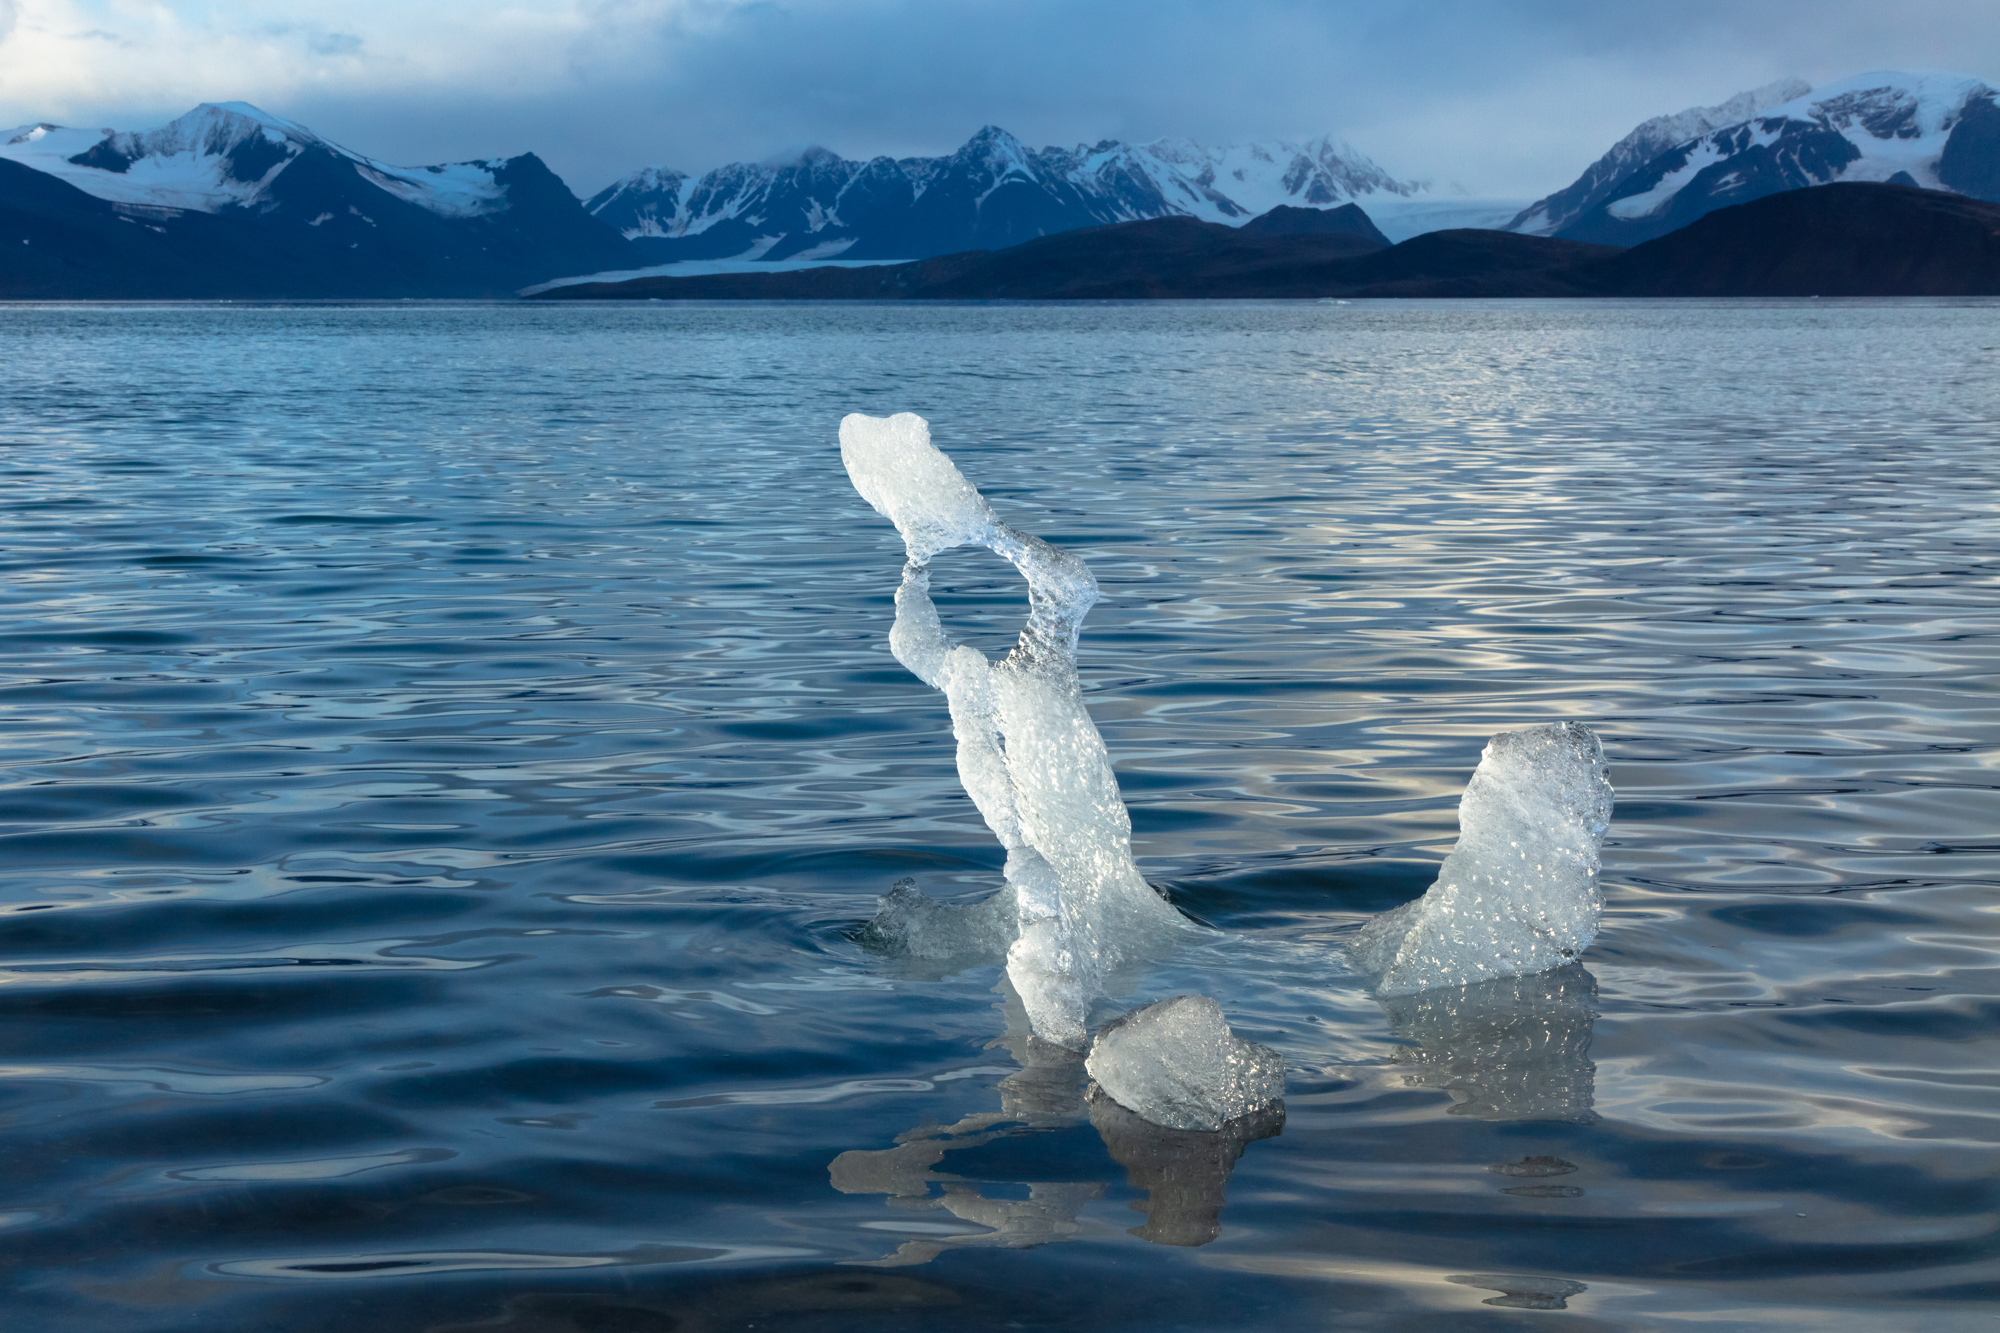 "A piece of glacial ice slowly melts, carved into sculptural form by the shimmering arctic sun.  When the sea ice retreats north in the summer, glacial ice is all that remains in the waters around the archipelago of Svalbard - but even this ice may soon disappear. Icebergs are formed when glaciers push down mountainsides and ""calve"" large chunks of ice into the sea, but this process only occurs when glaciers are large and healthy enough to reach sea-level. It is normal for glaciers to retreat through the summer, but the retreat would ordinarily be met with an advance during the long arctic winter. As climate change takes hold, however, the summer retreat out-scales the winter advance, resulting in glaciers that are rapidly melting and disappearing into the distant mountains."